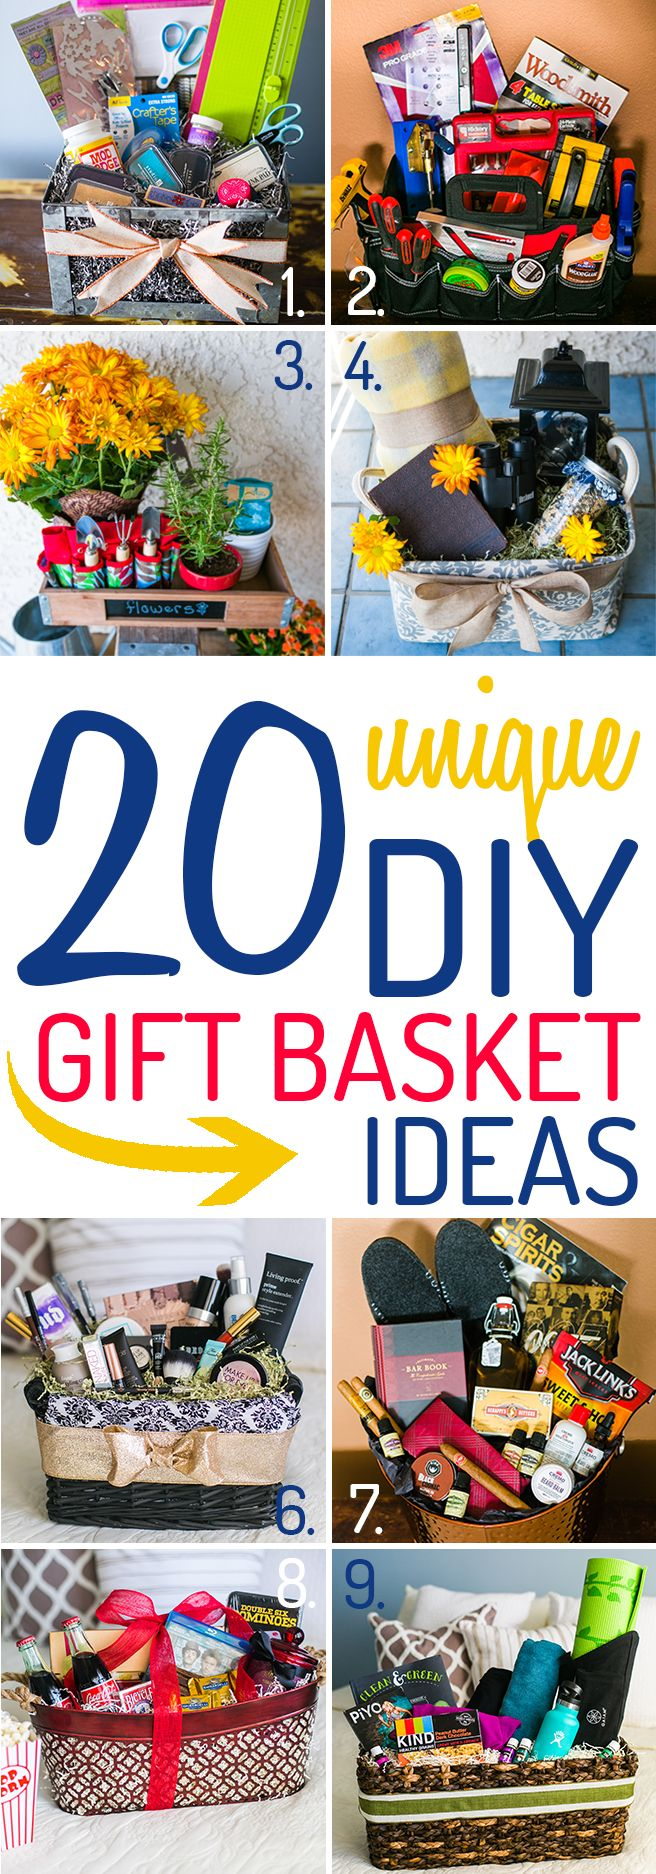 Best 25+ Family gift ideas ideas on Pinterest | Family gifts ...